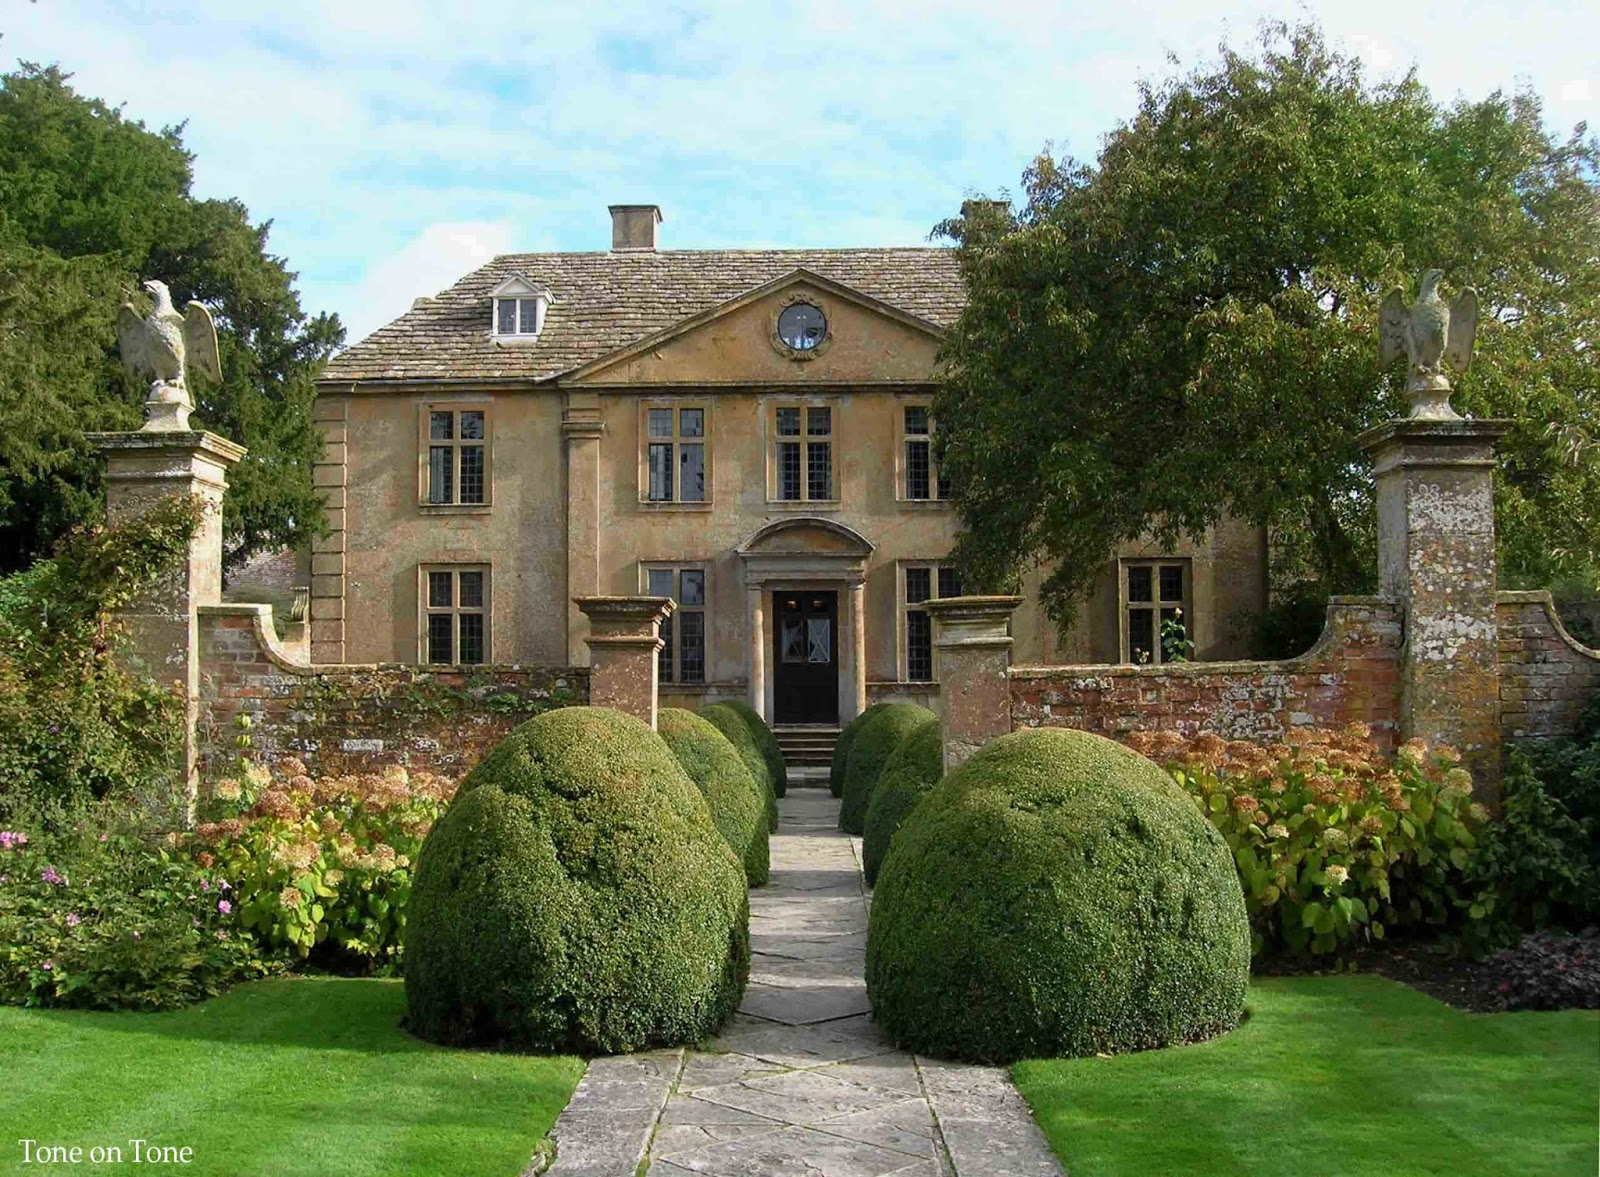 Tone on tone january 2013 for Pictures of english country houses